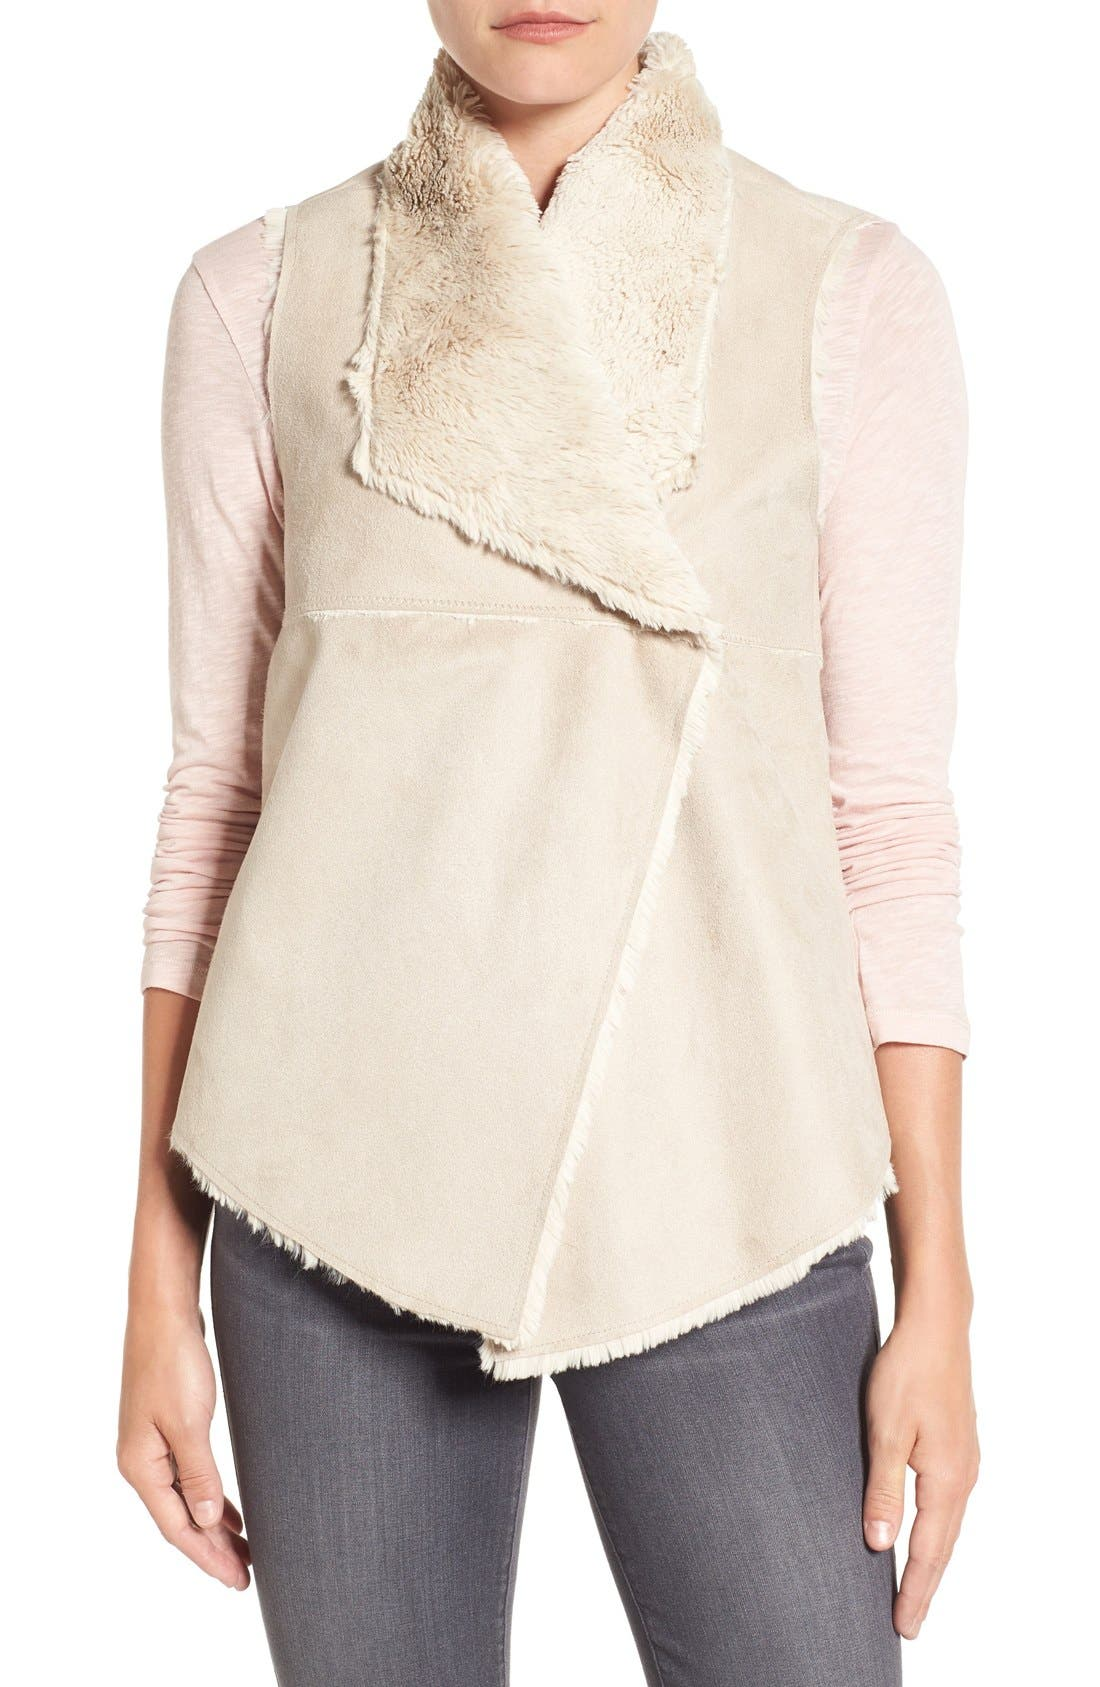 DYLAN,                             'Madison' Faux Shearling Vest,                             Alternate thumbnail 5, color,                             256